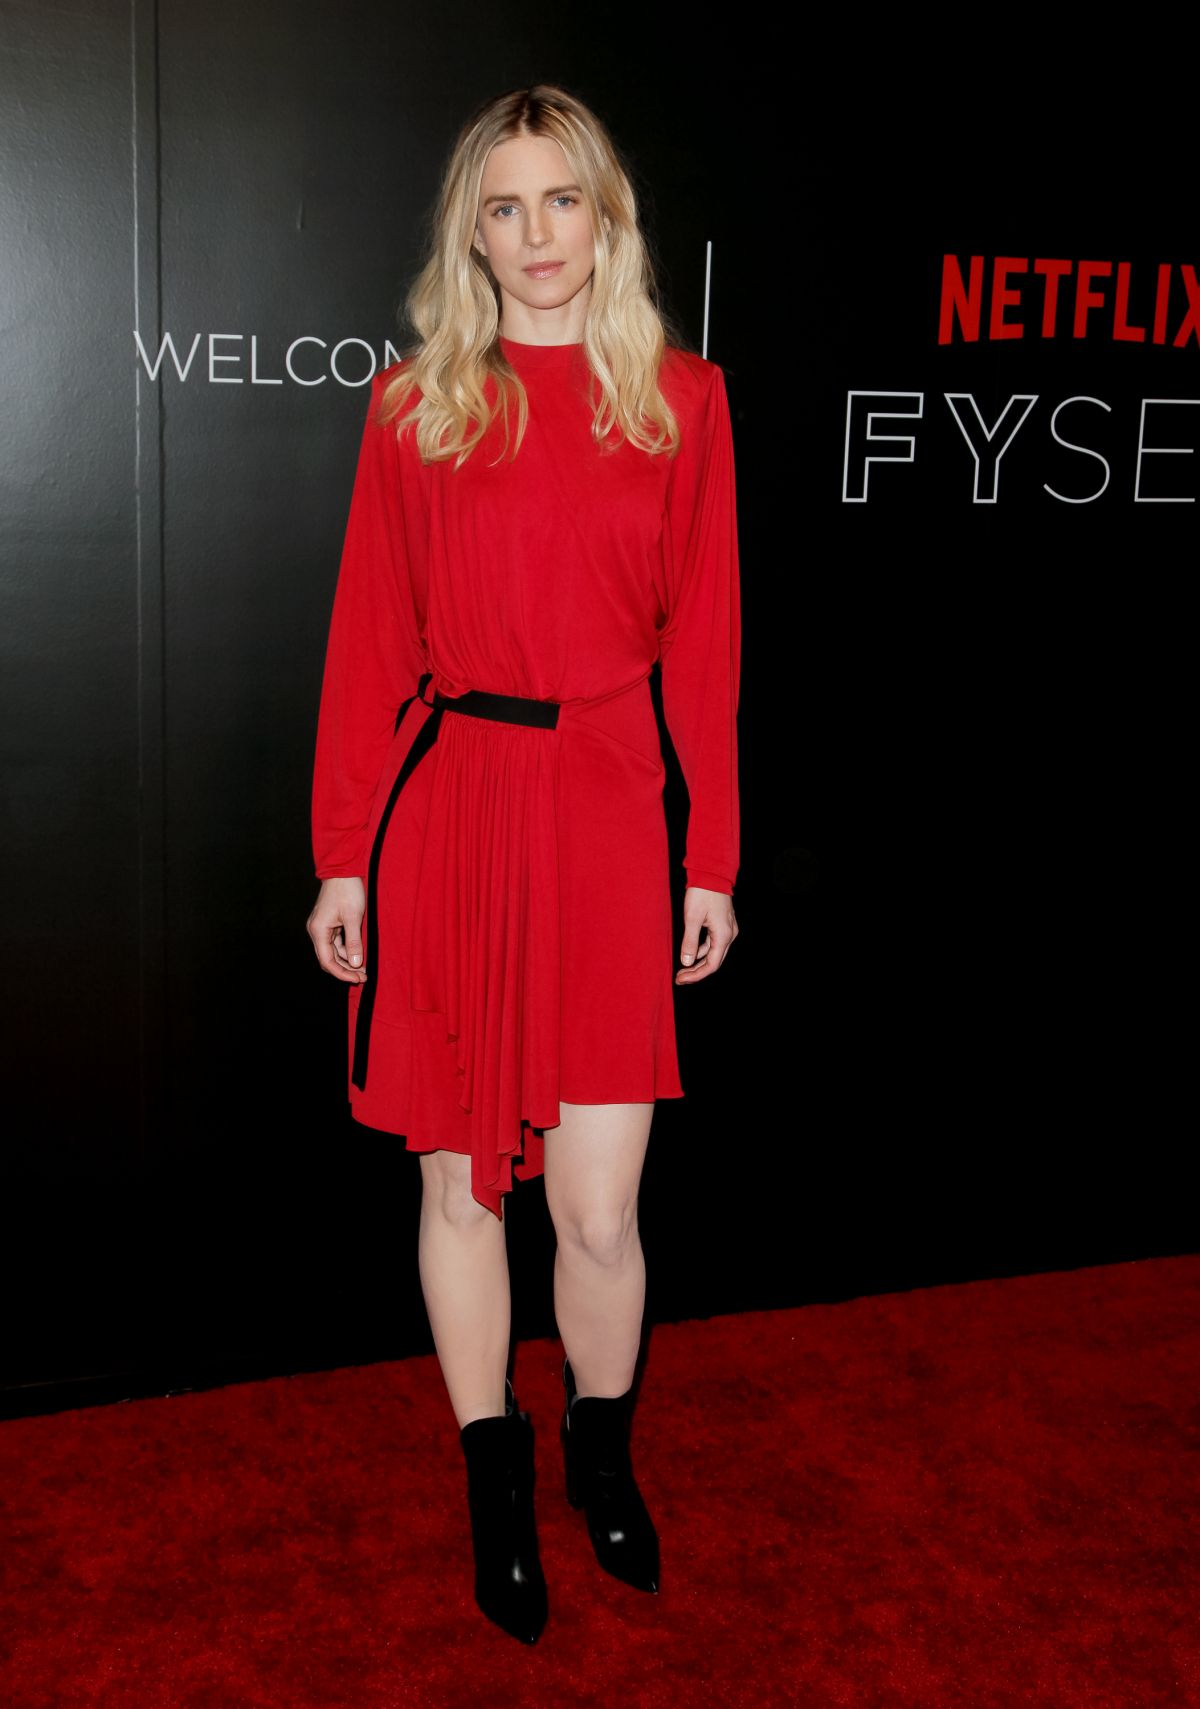 BRIT MARLING at Netflix